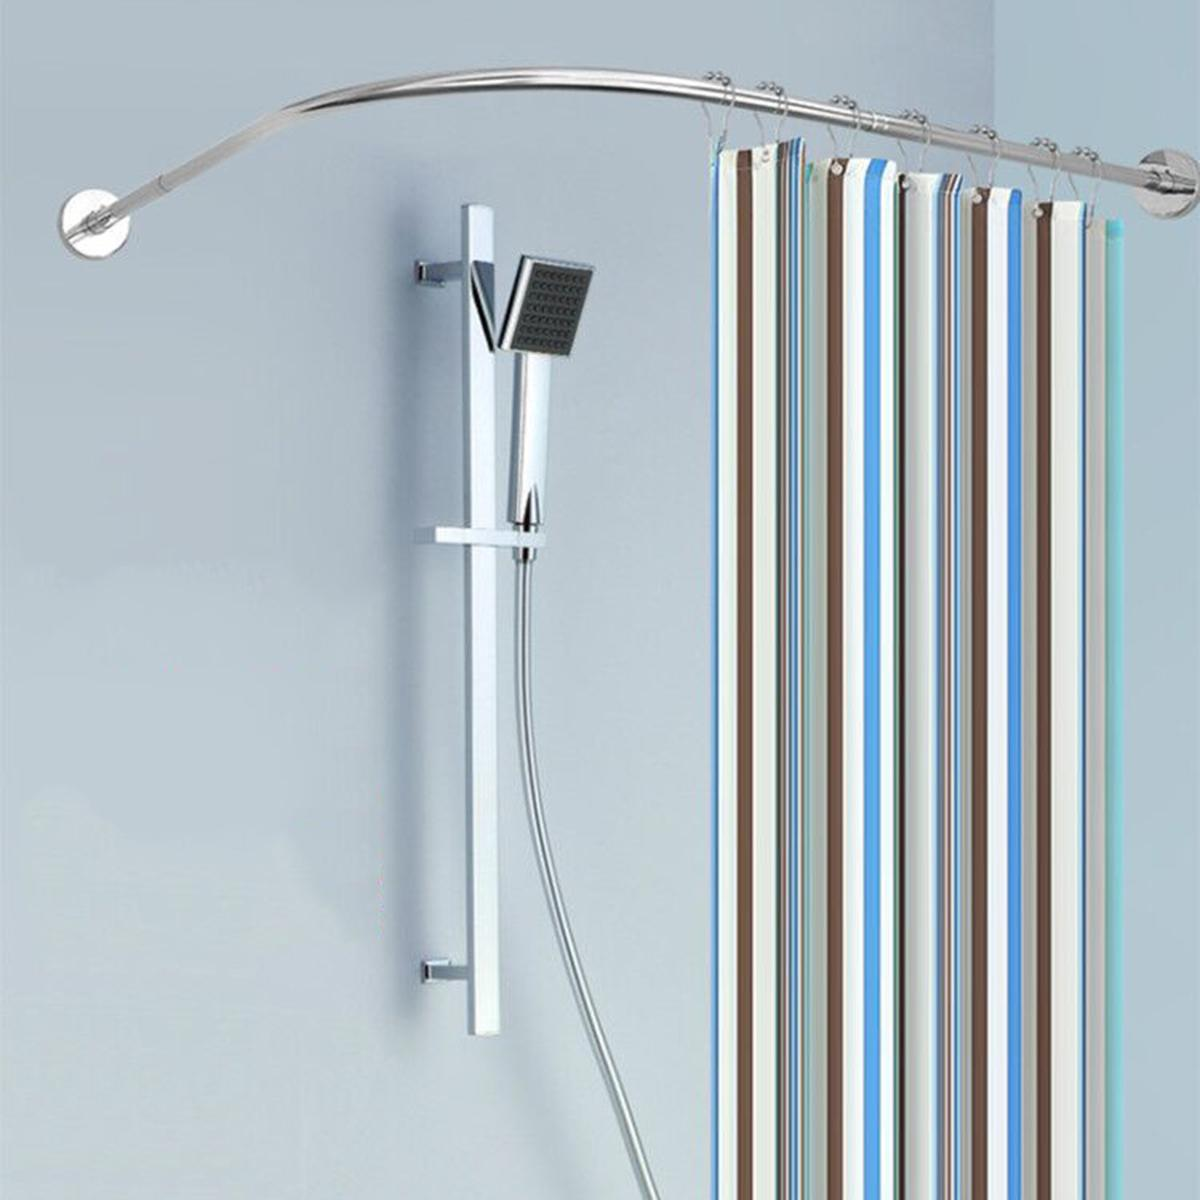 Extendable Curved Shower Curtain Rod U Shaped 201 Stainless Steel Shower Curtain Poles Punch-Free Bathroom Curtain Rail 6 Size